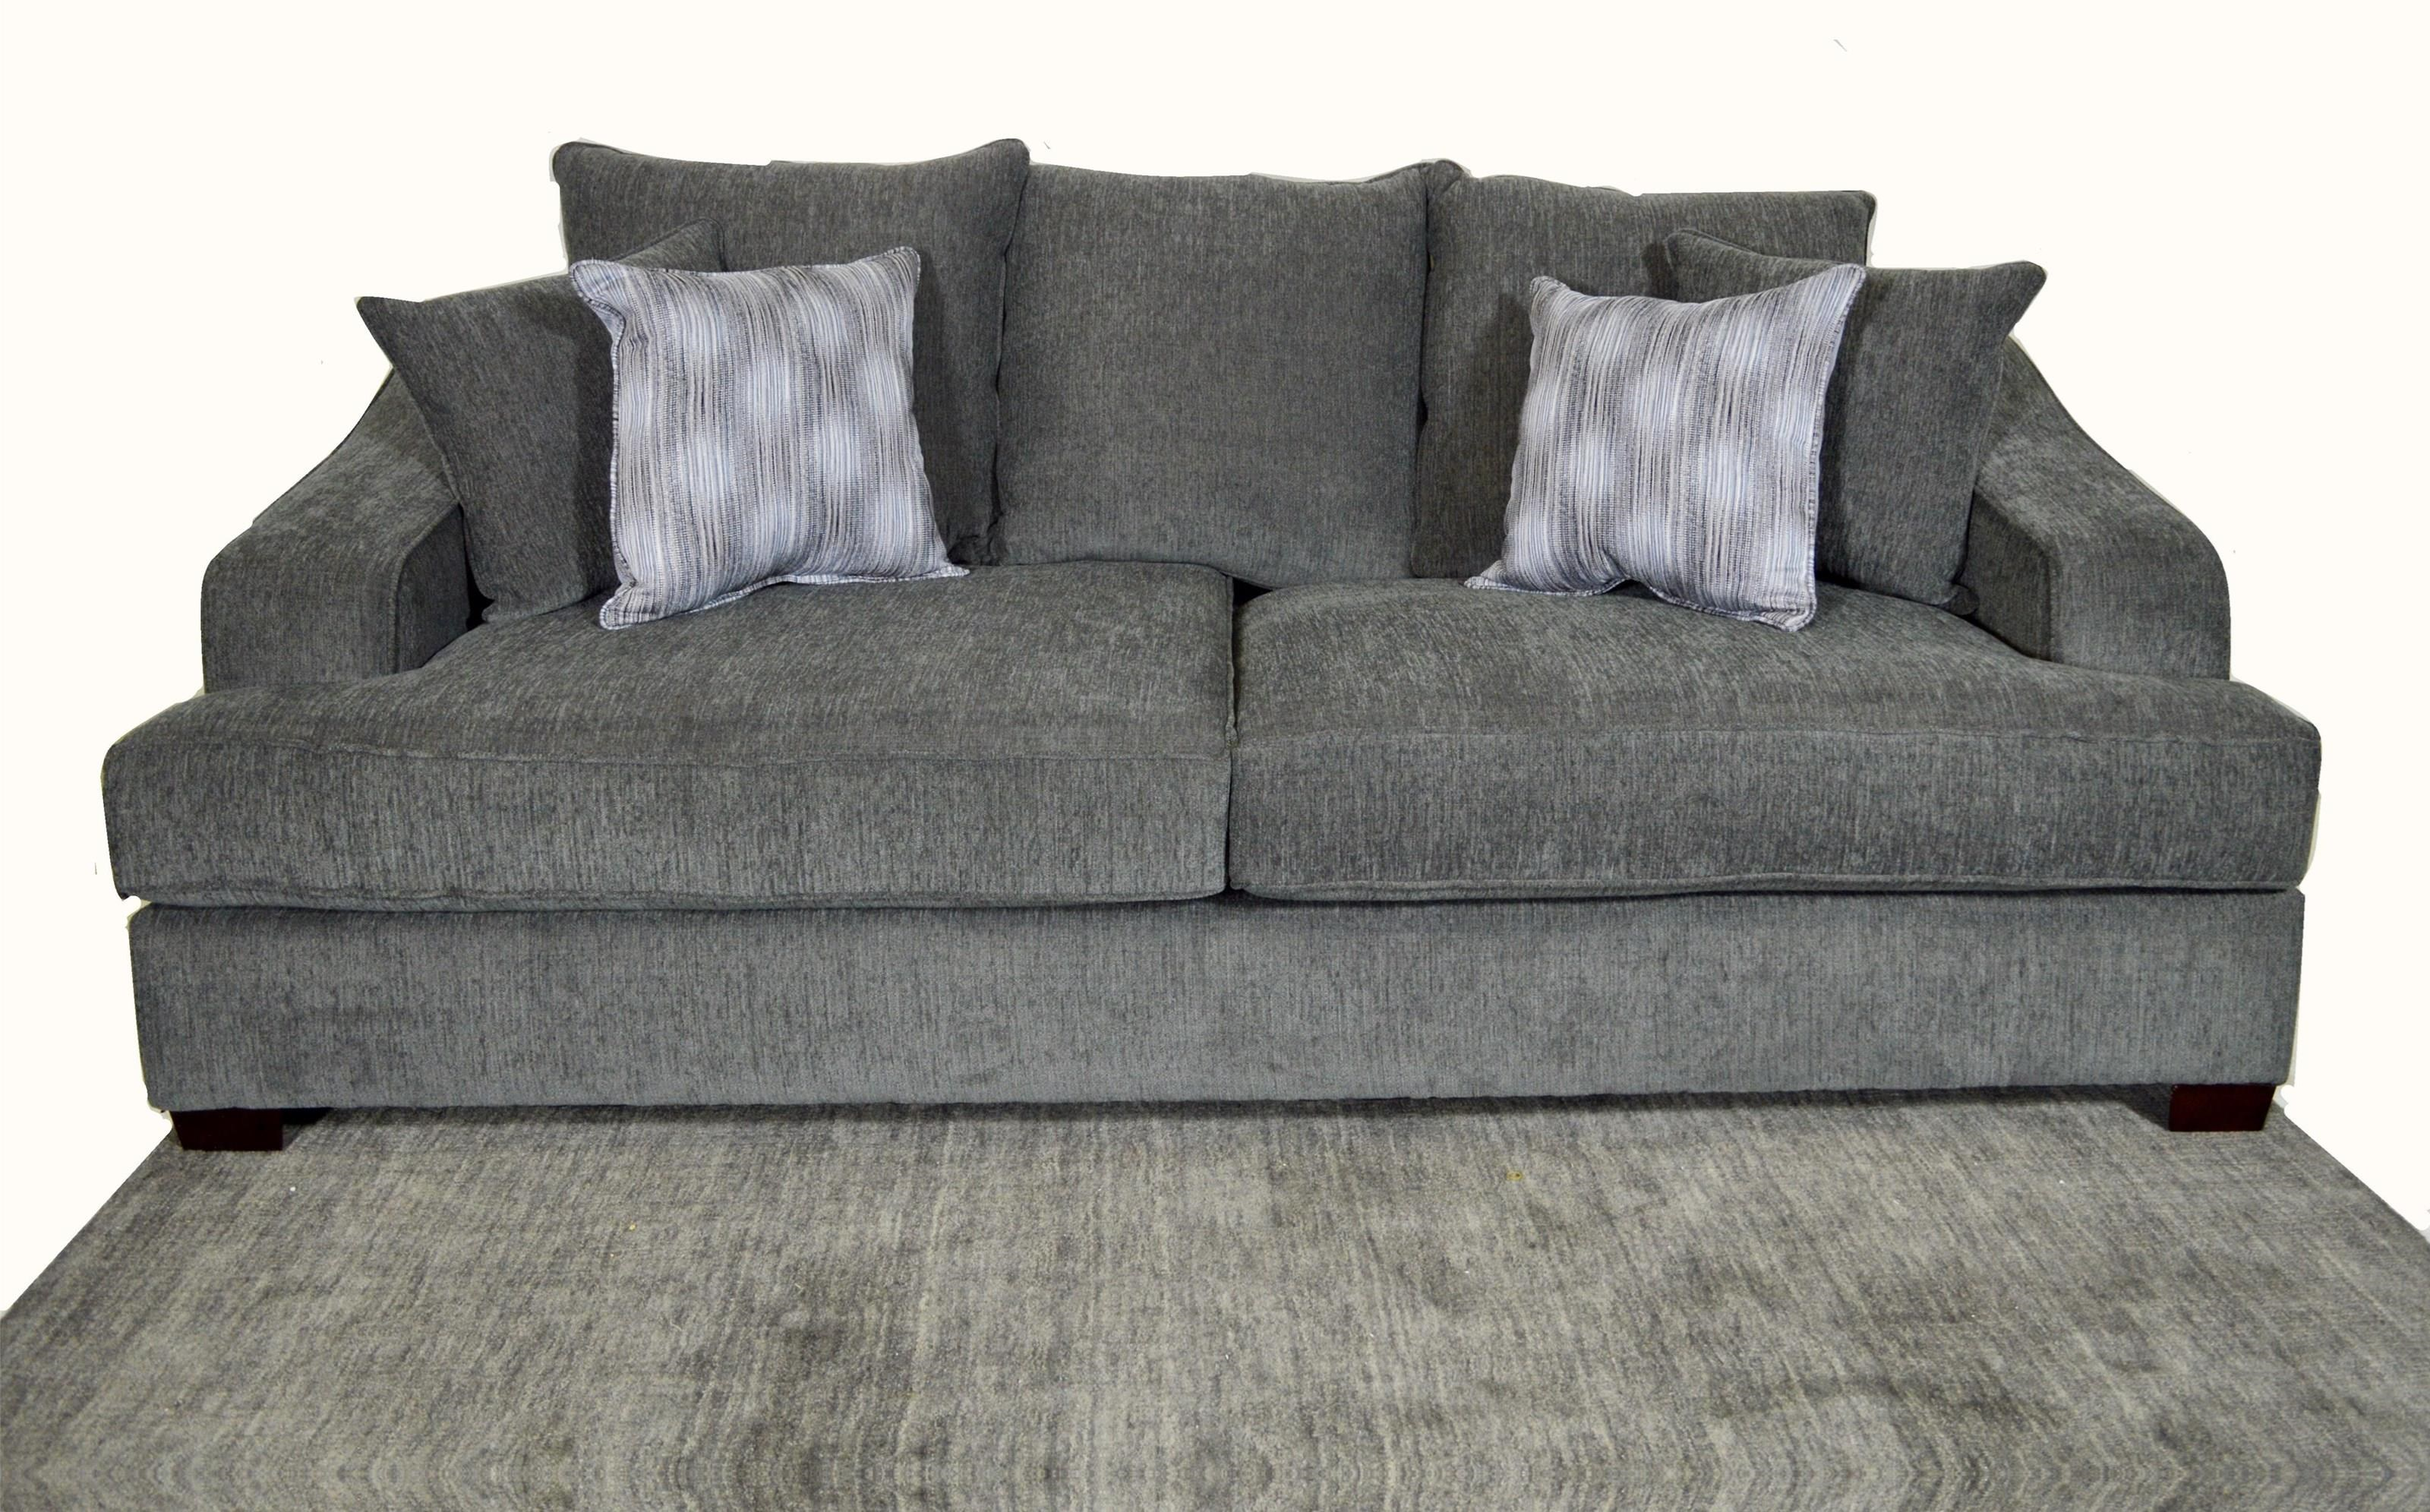 Lincoln Sofa and Chair Set by EJ Lauren at Sam Levitz Outlet